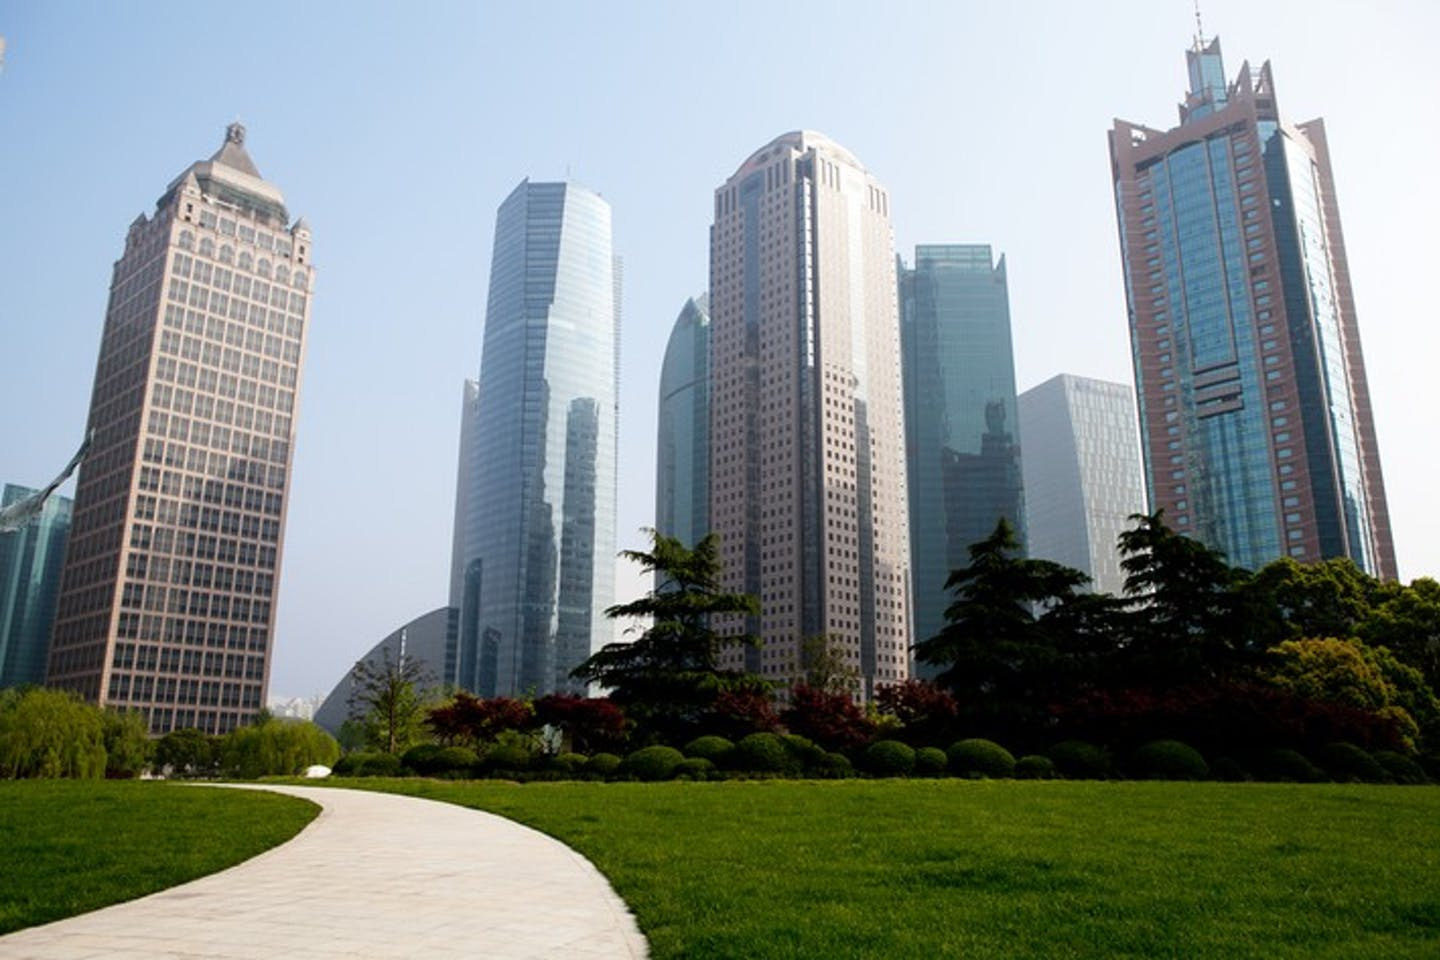 Shanghai financial centre